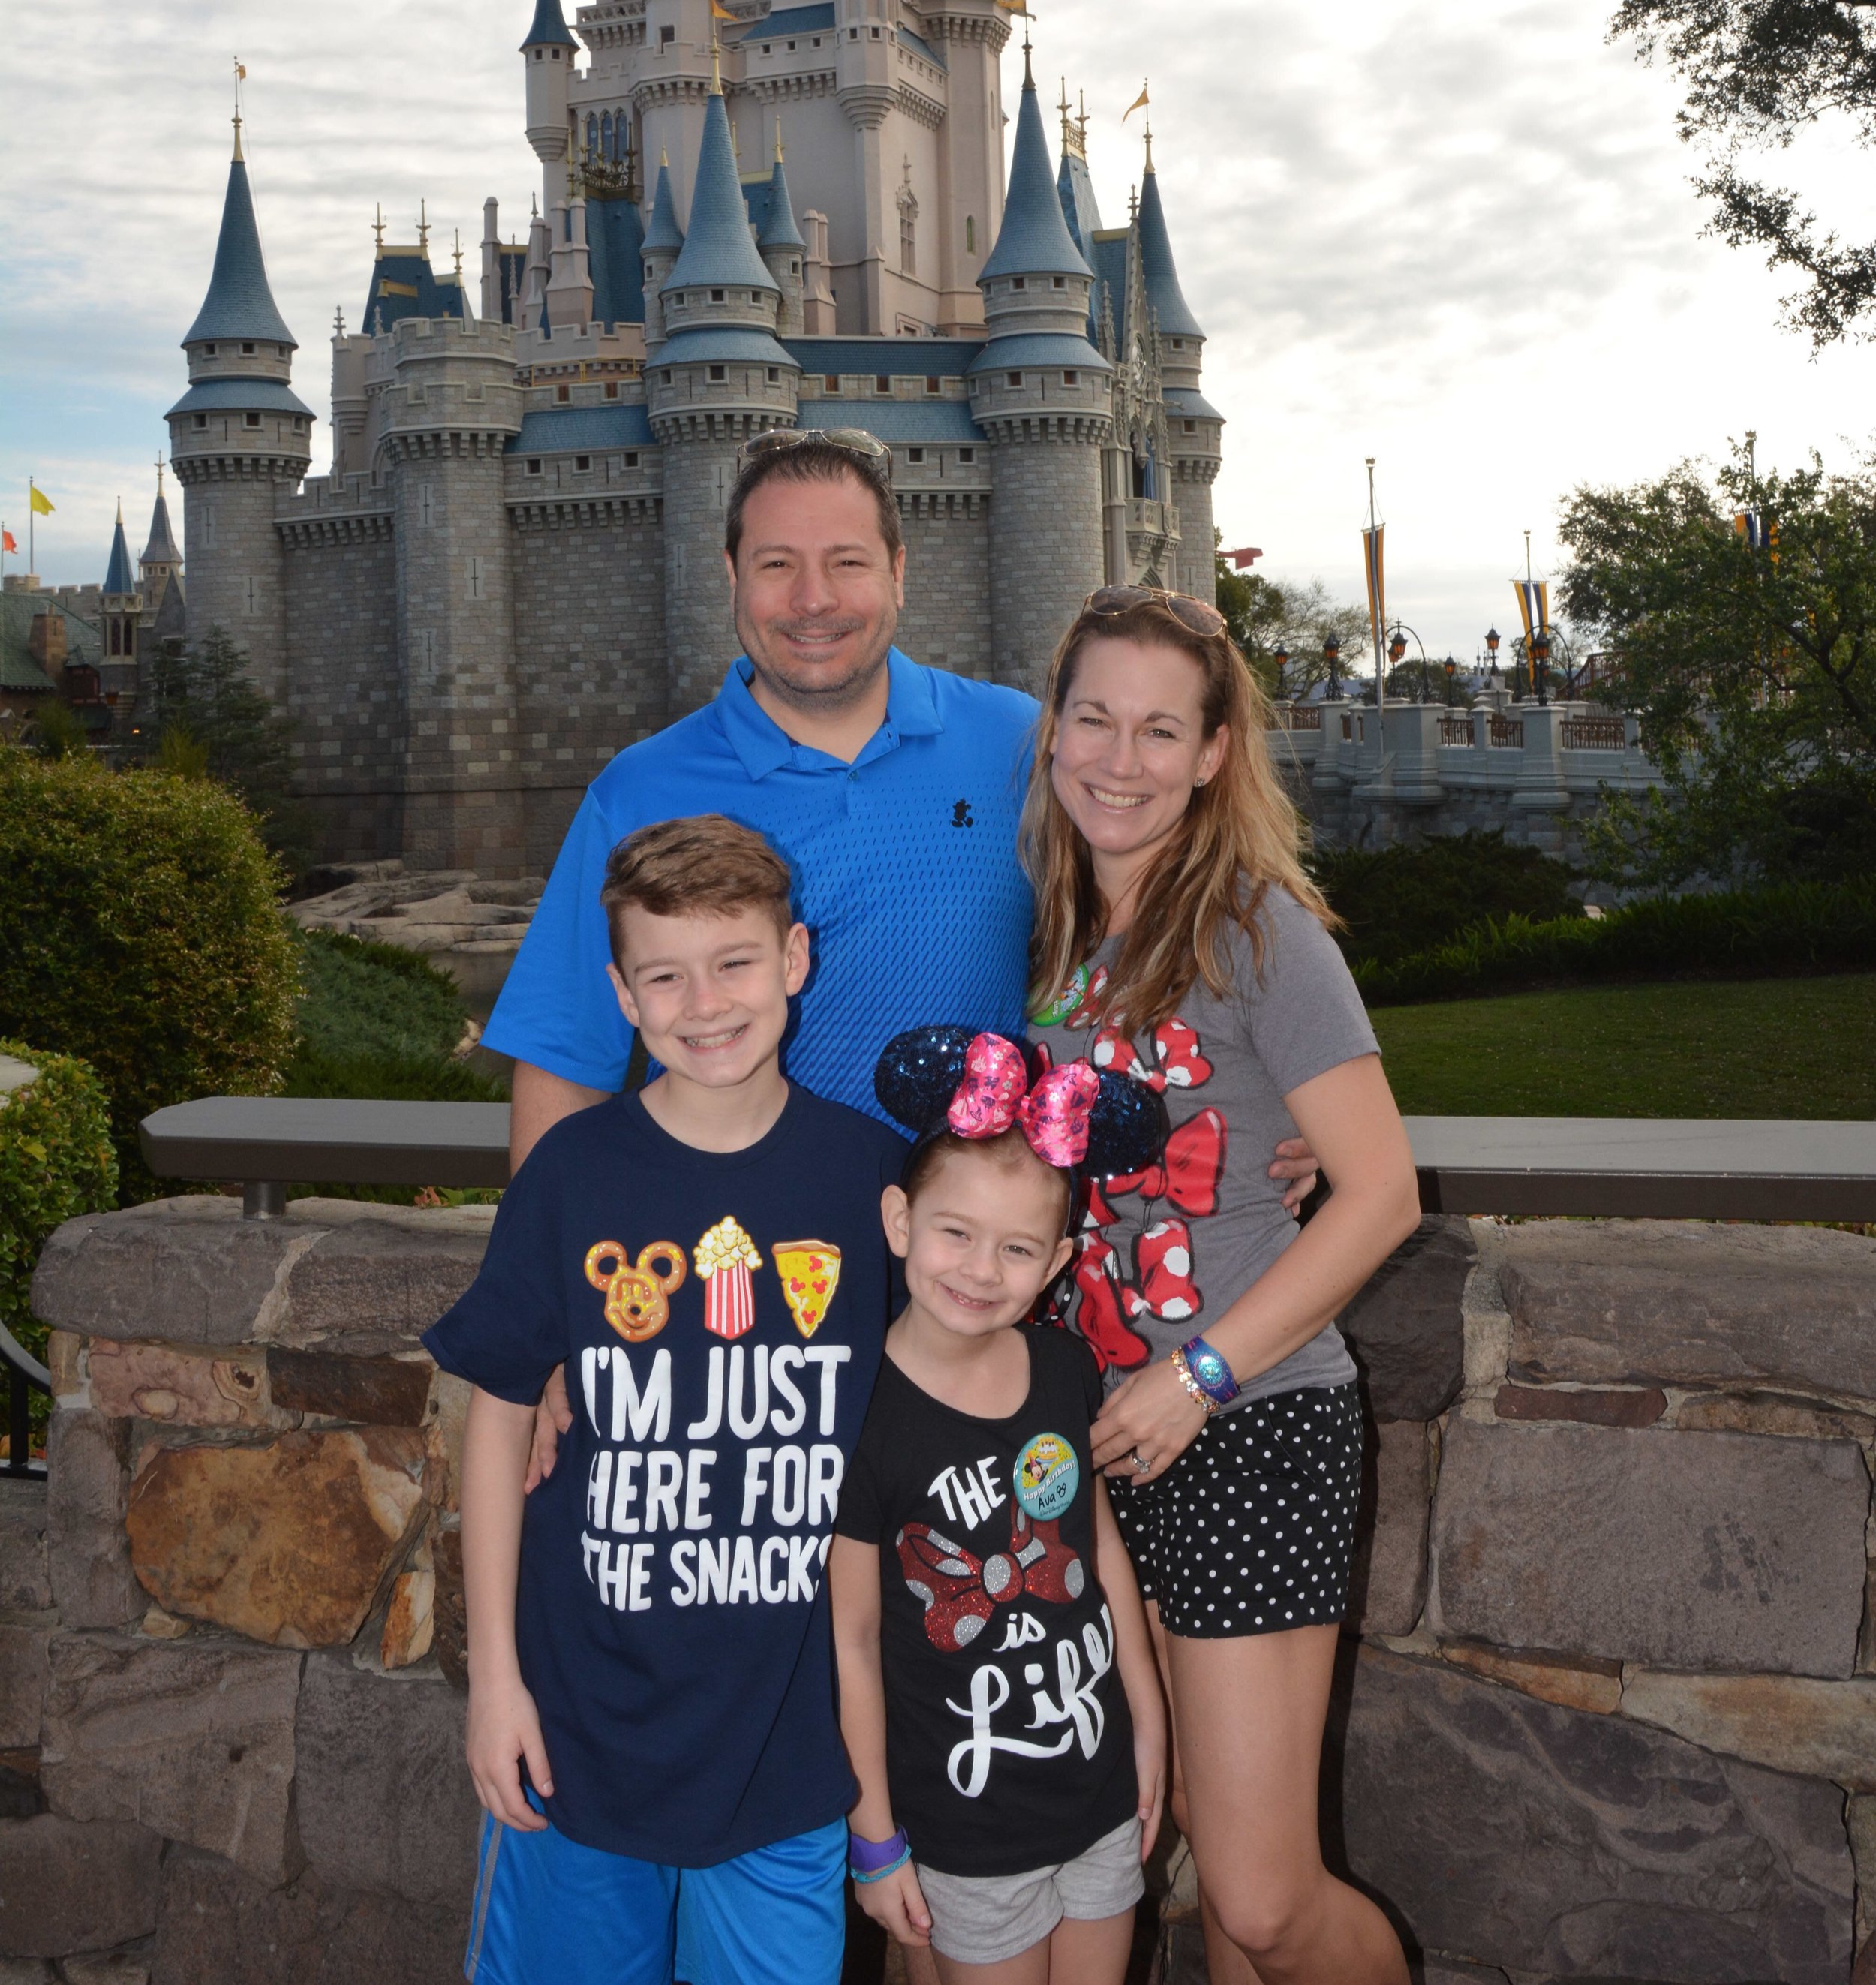 Jo and her family having another great trip to Disney World.